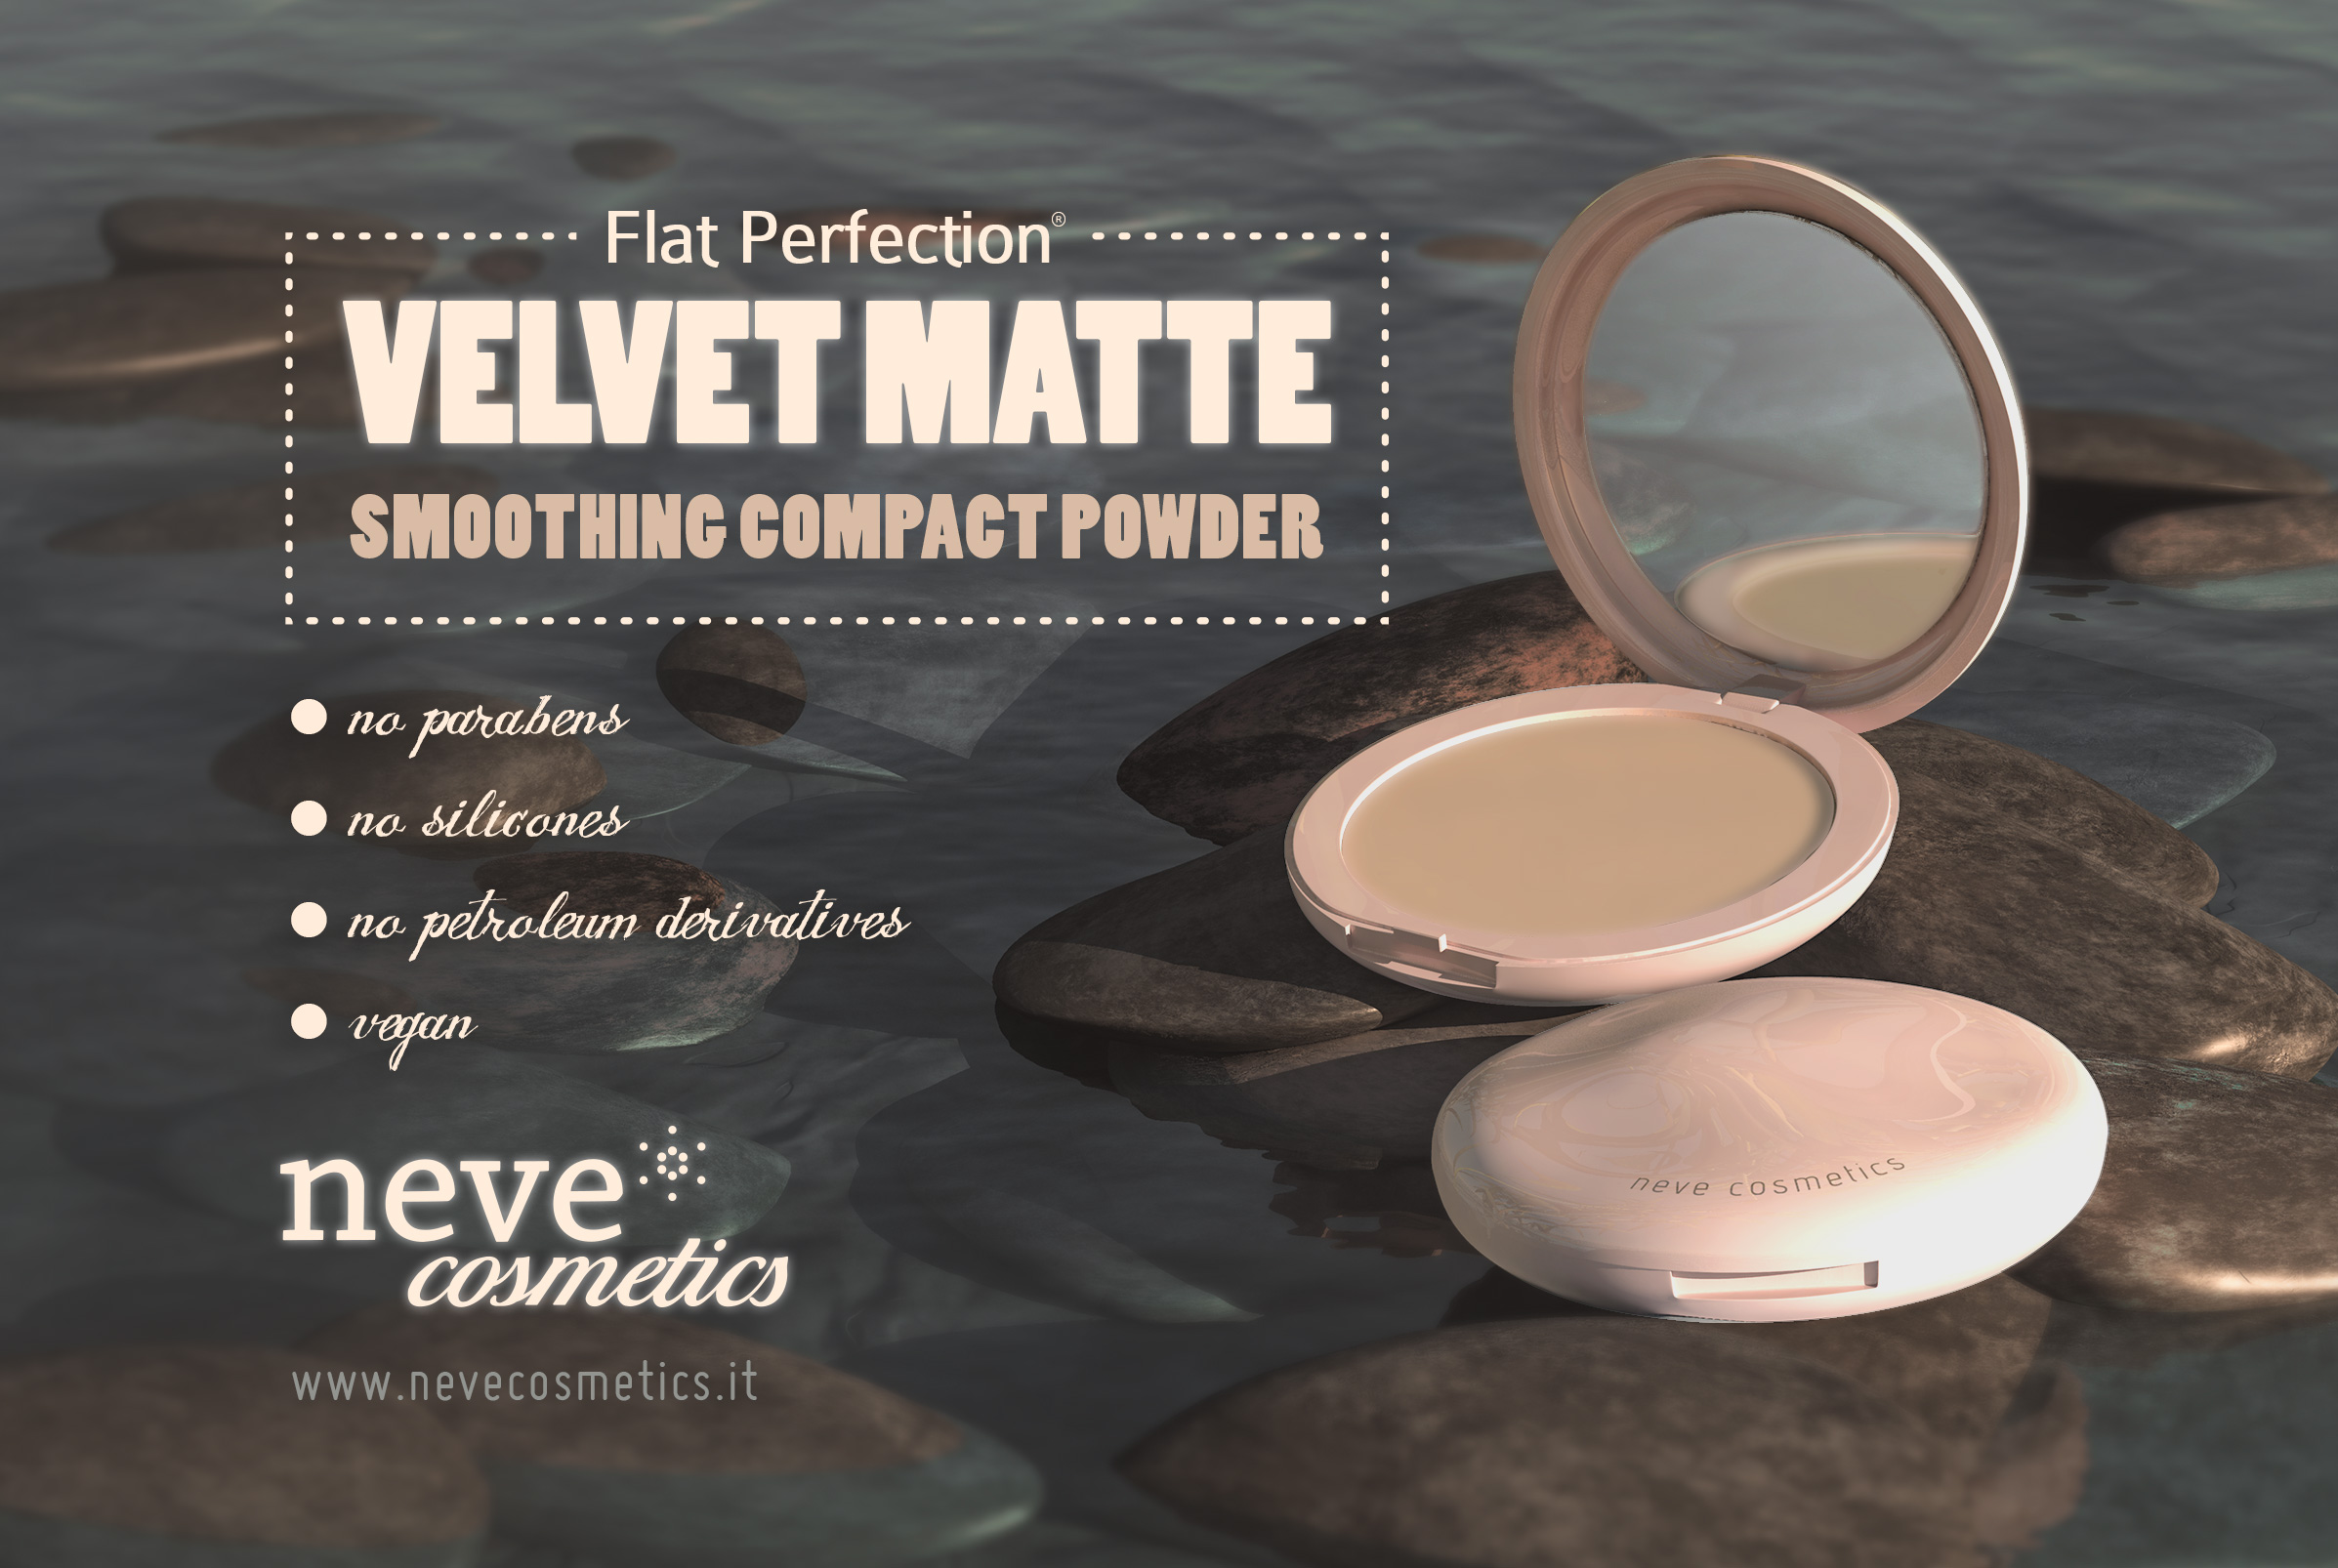 Neve Cosmetics: Velvet Matte, smoothing compact powder